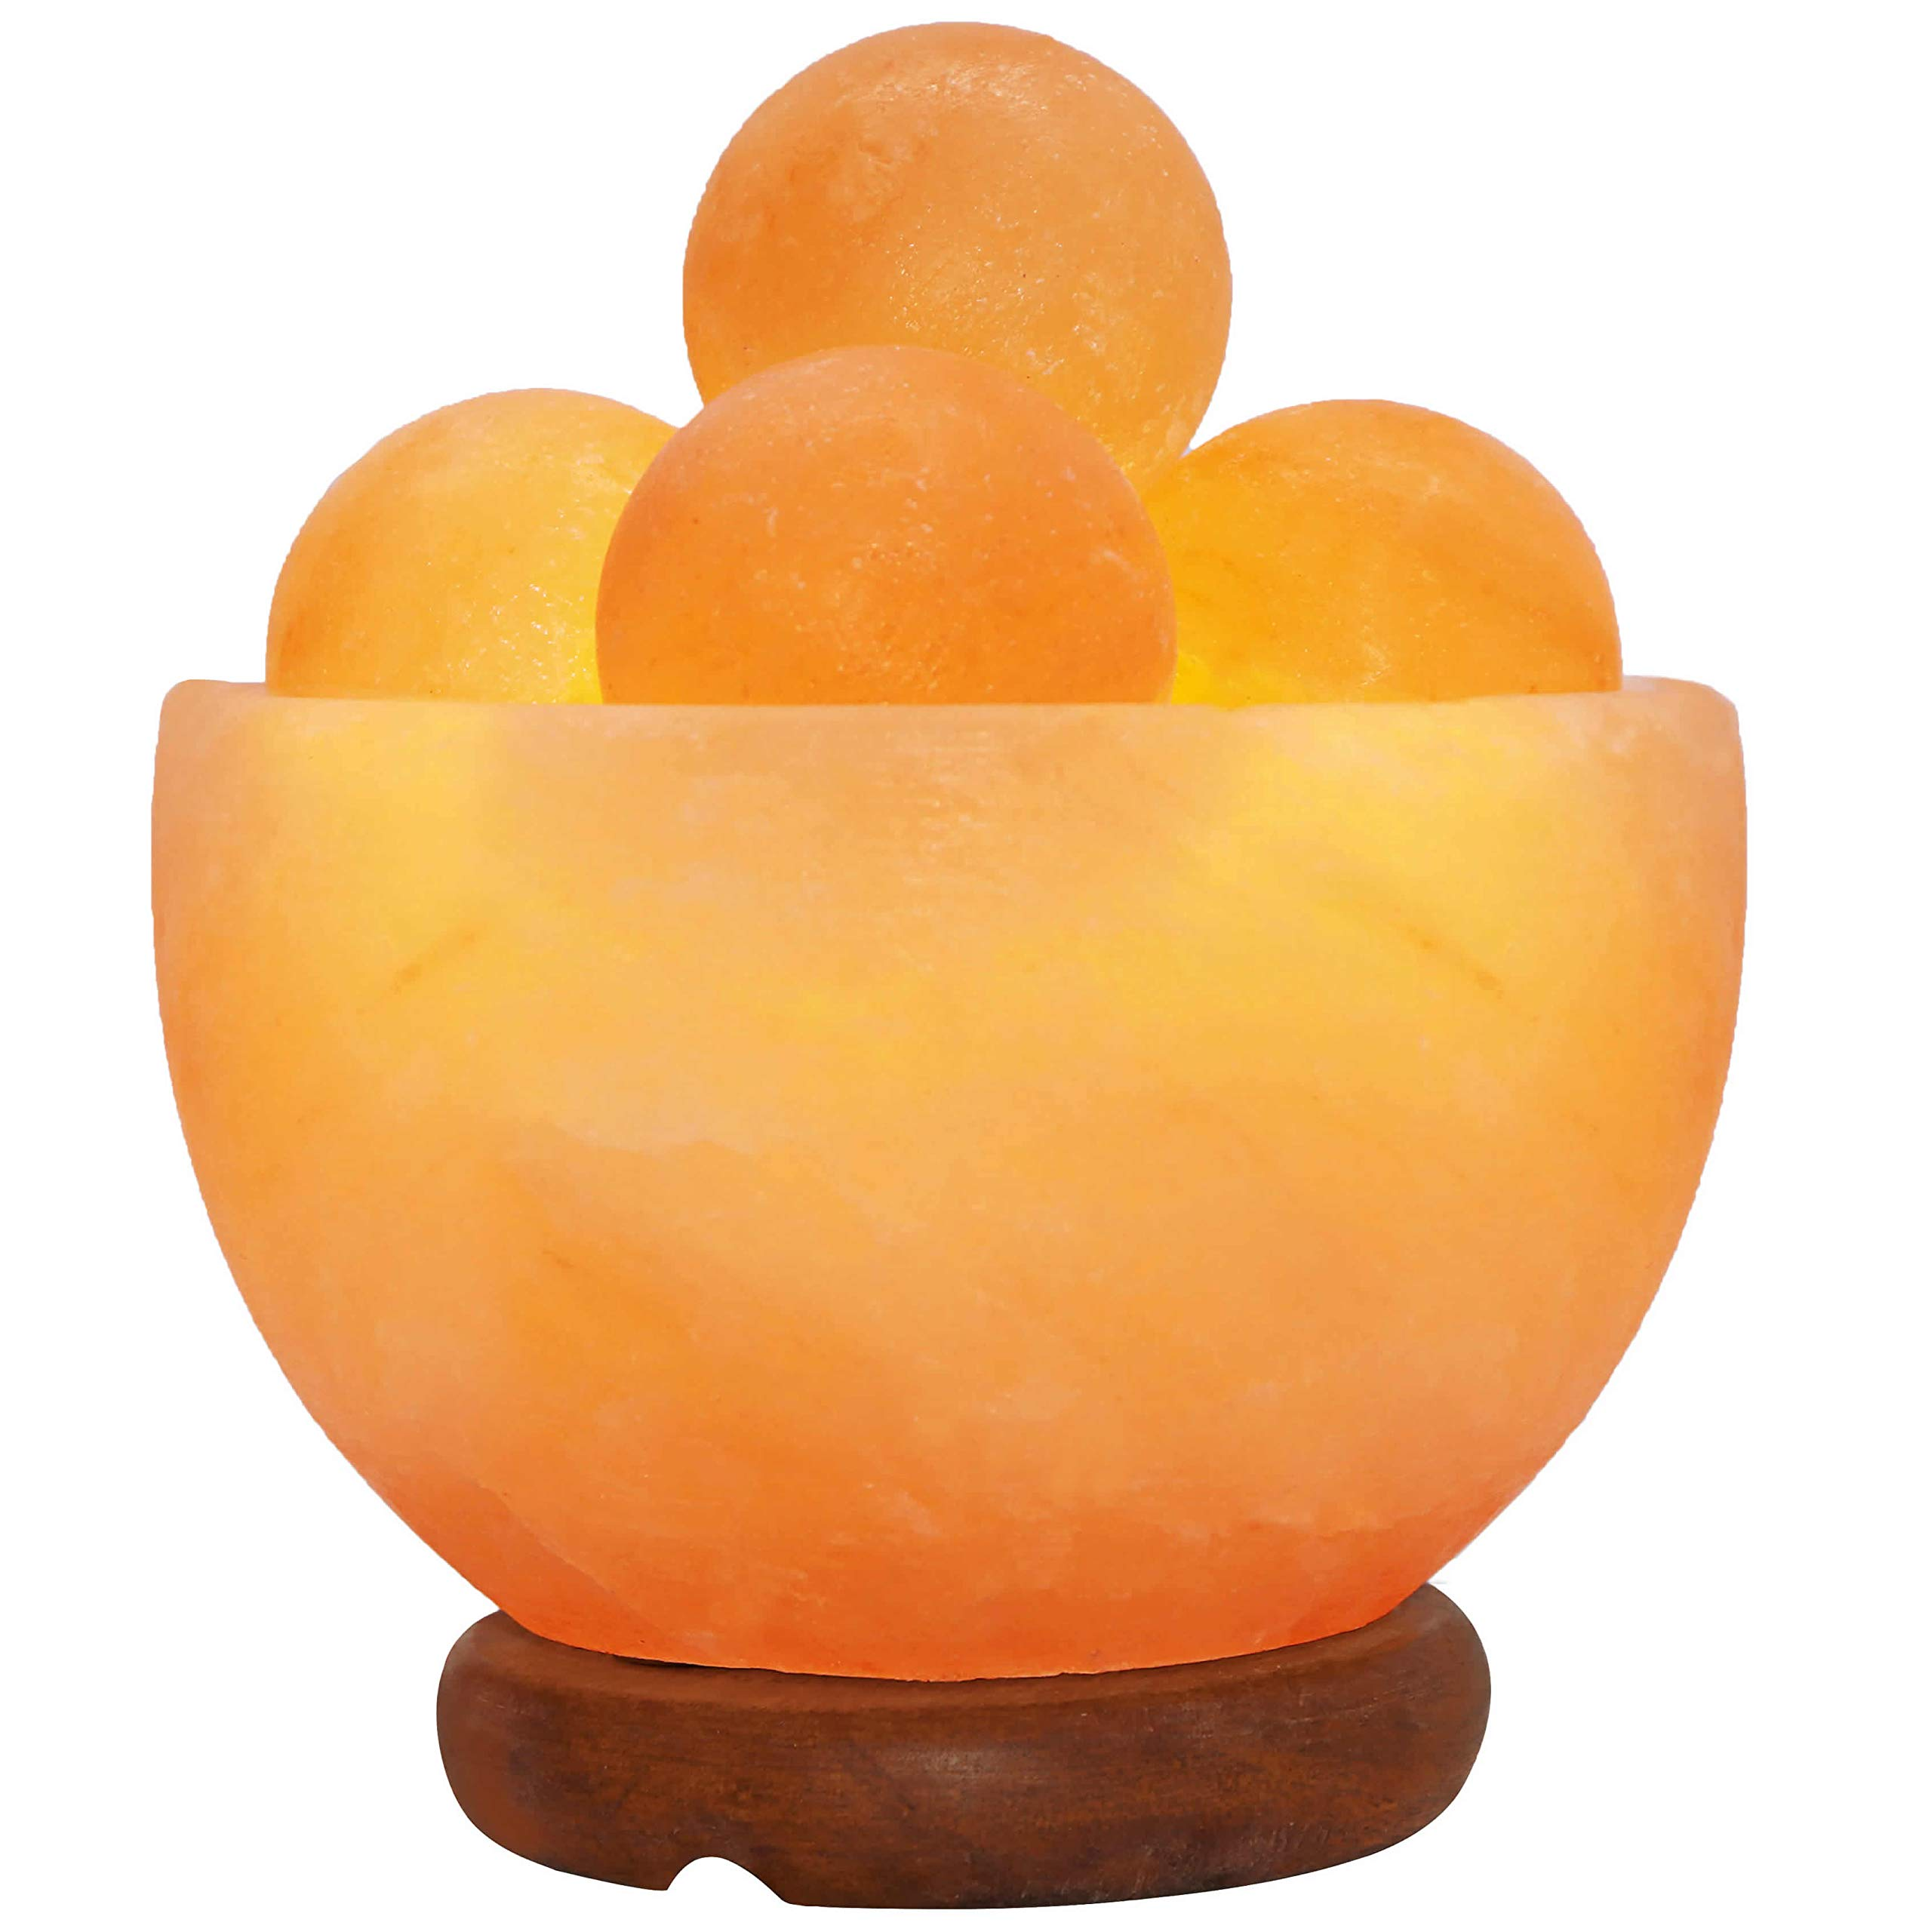 Himalayan Fire Bowl Salt Lamp with 5 Massage Balls Premium Quality Authentic from Pakistan